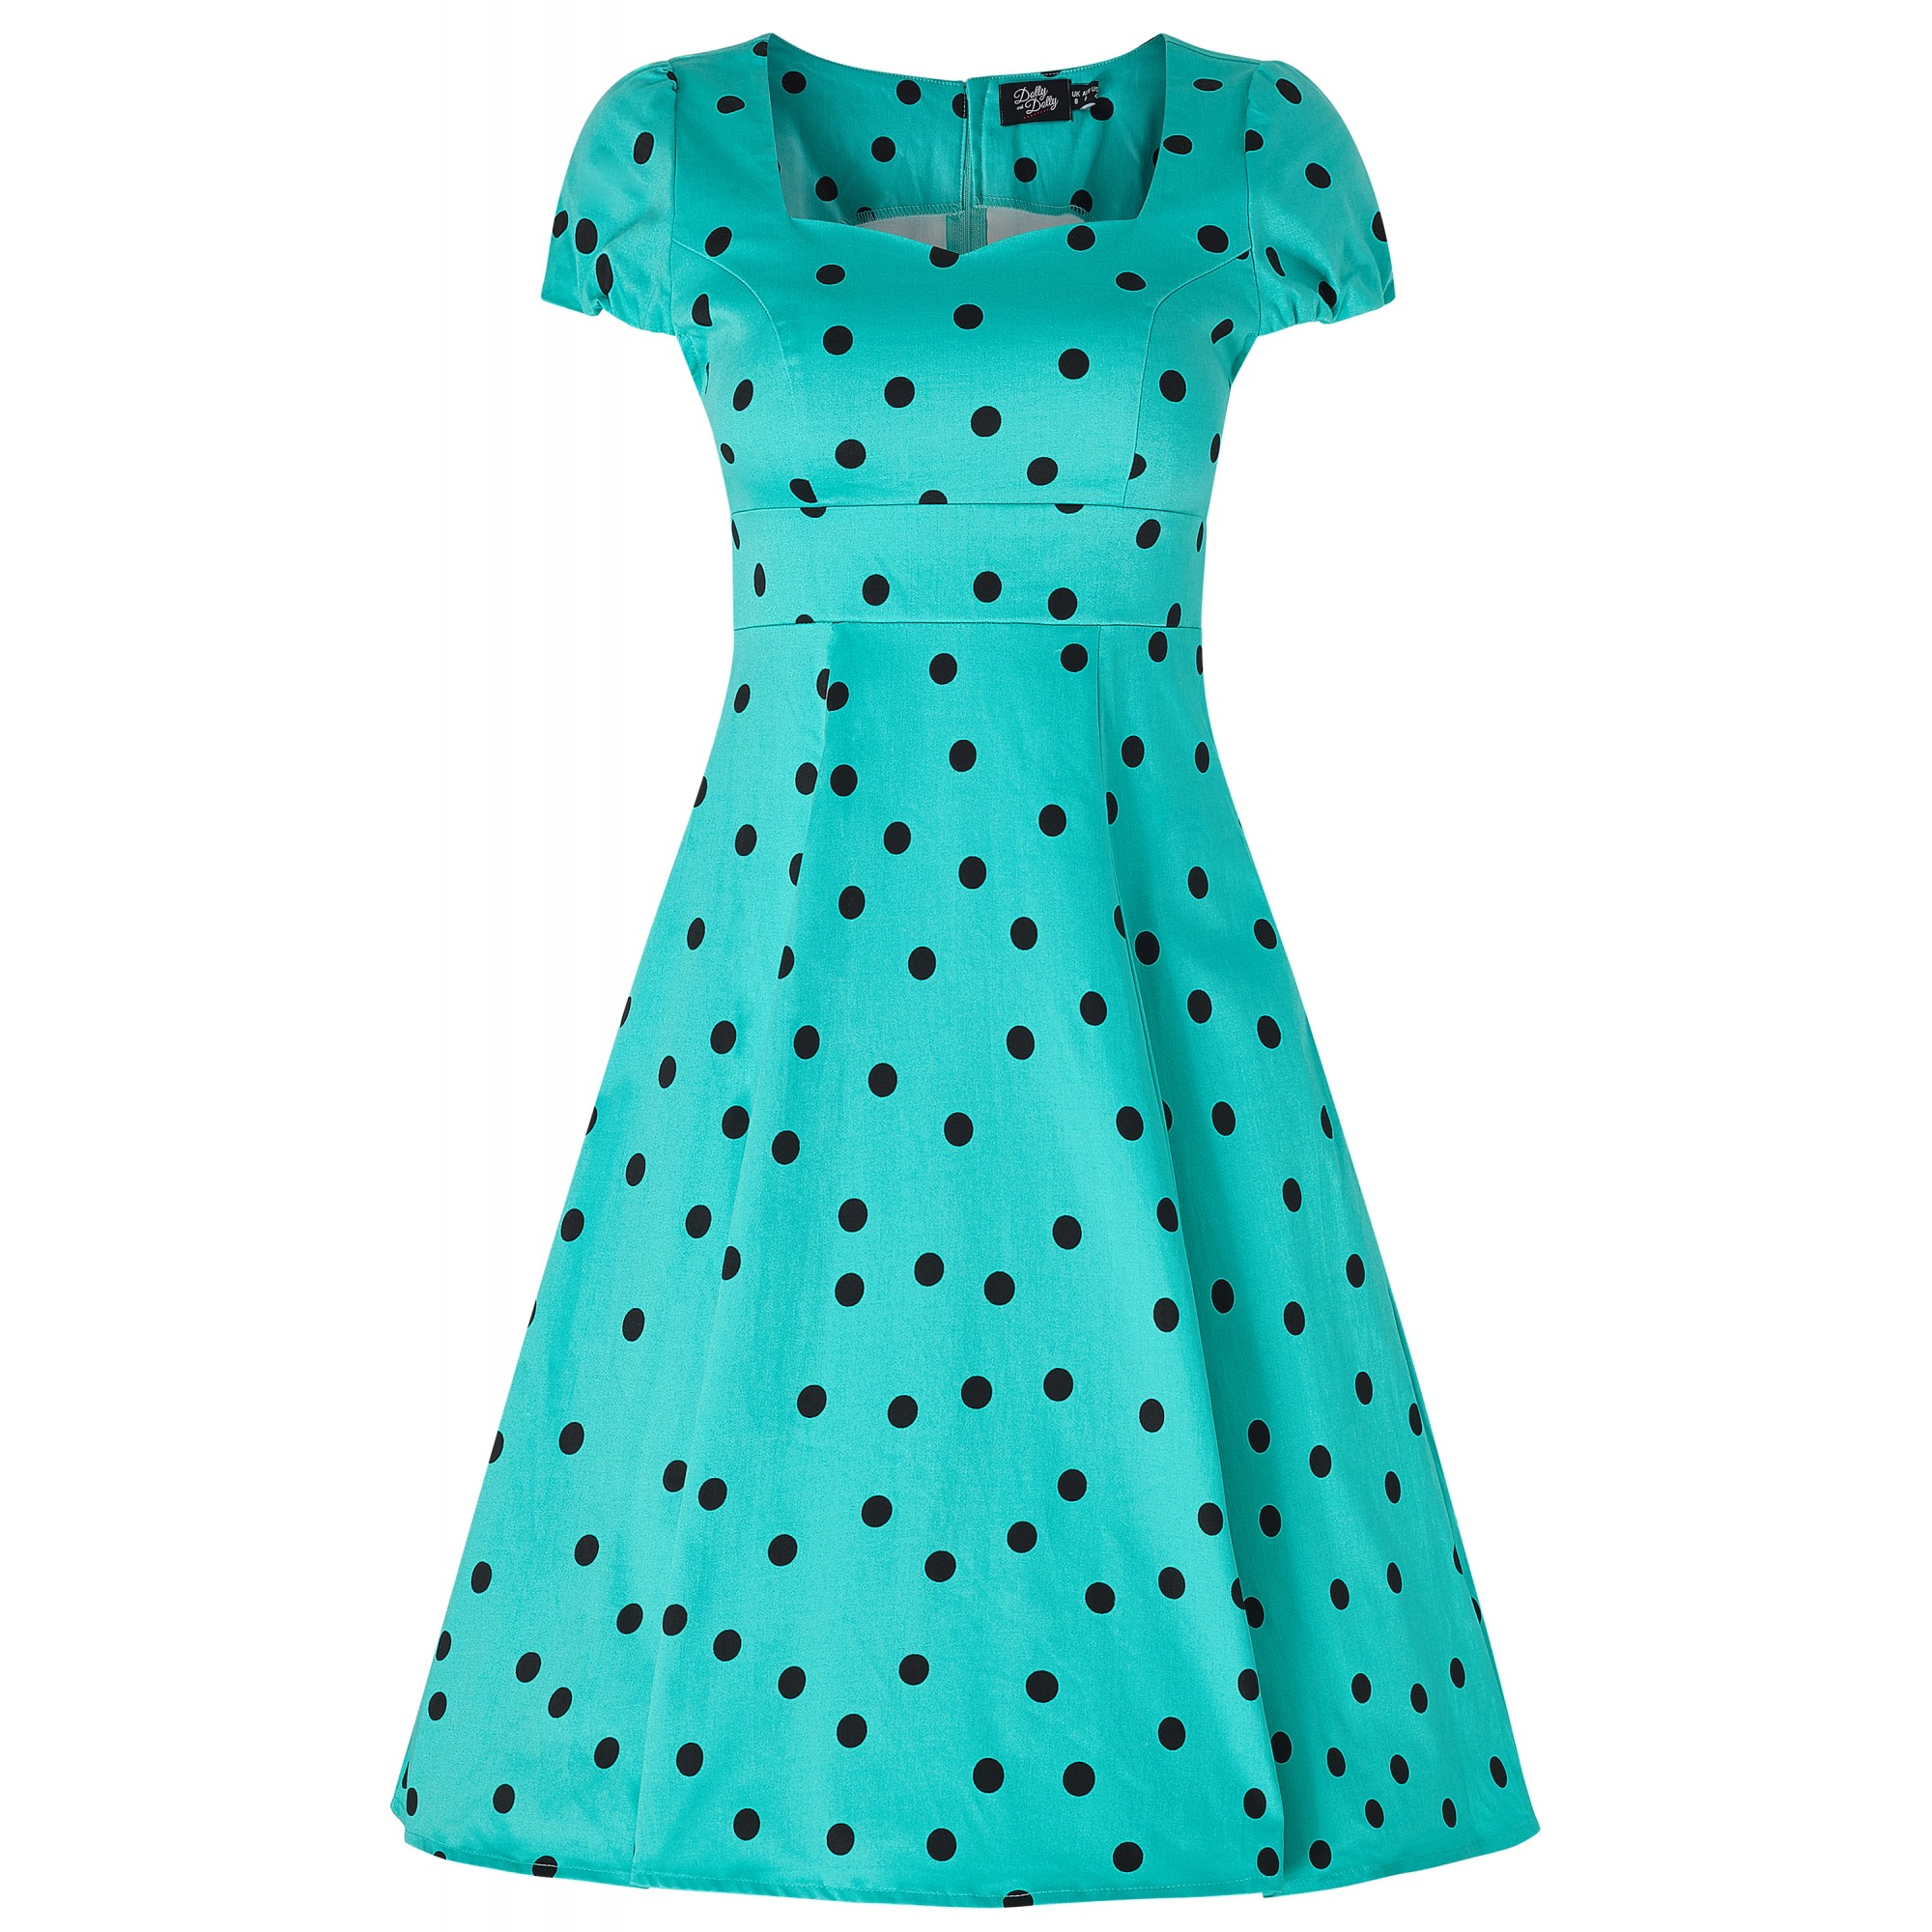 Amy Turquoise Polka Dot 1950s Style Dress Size 8